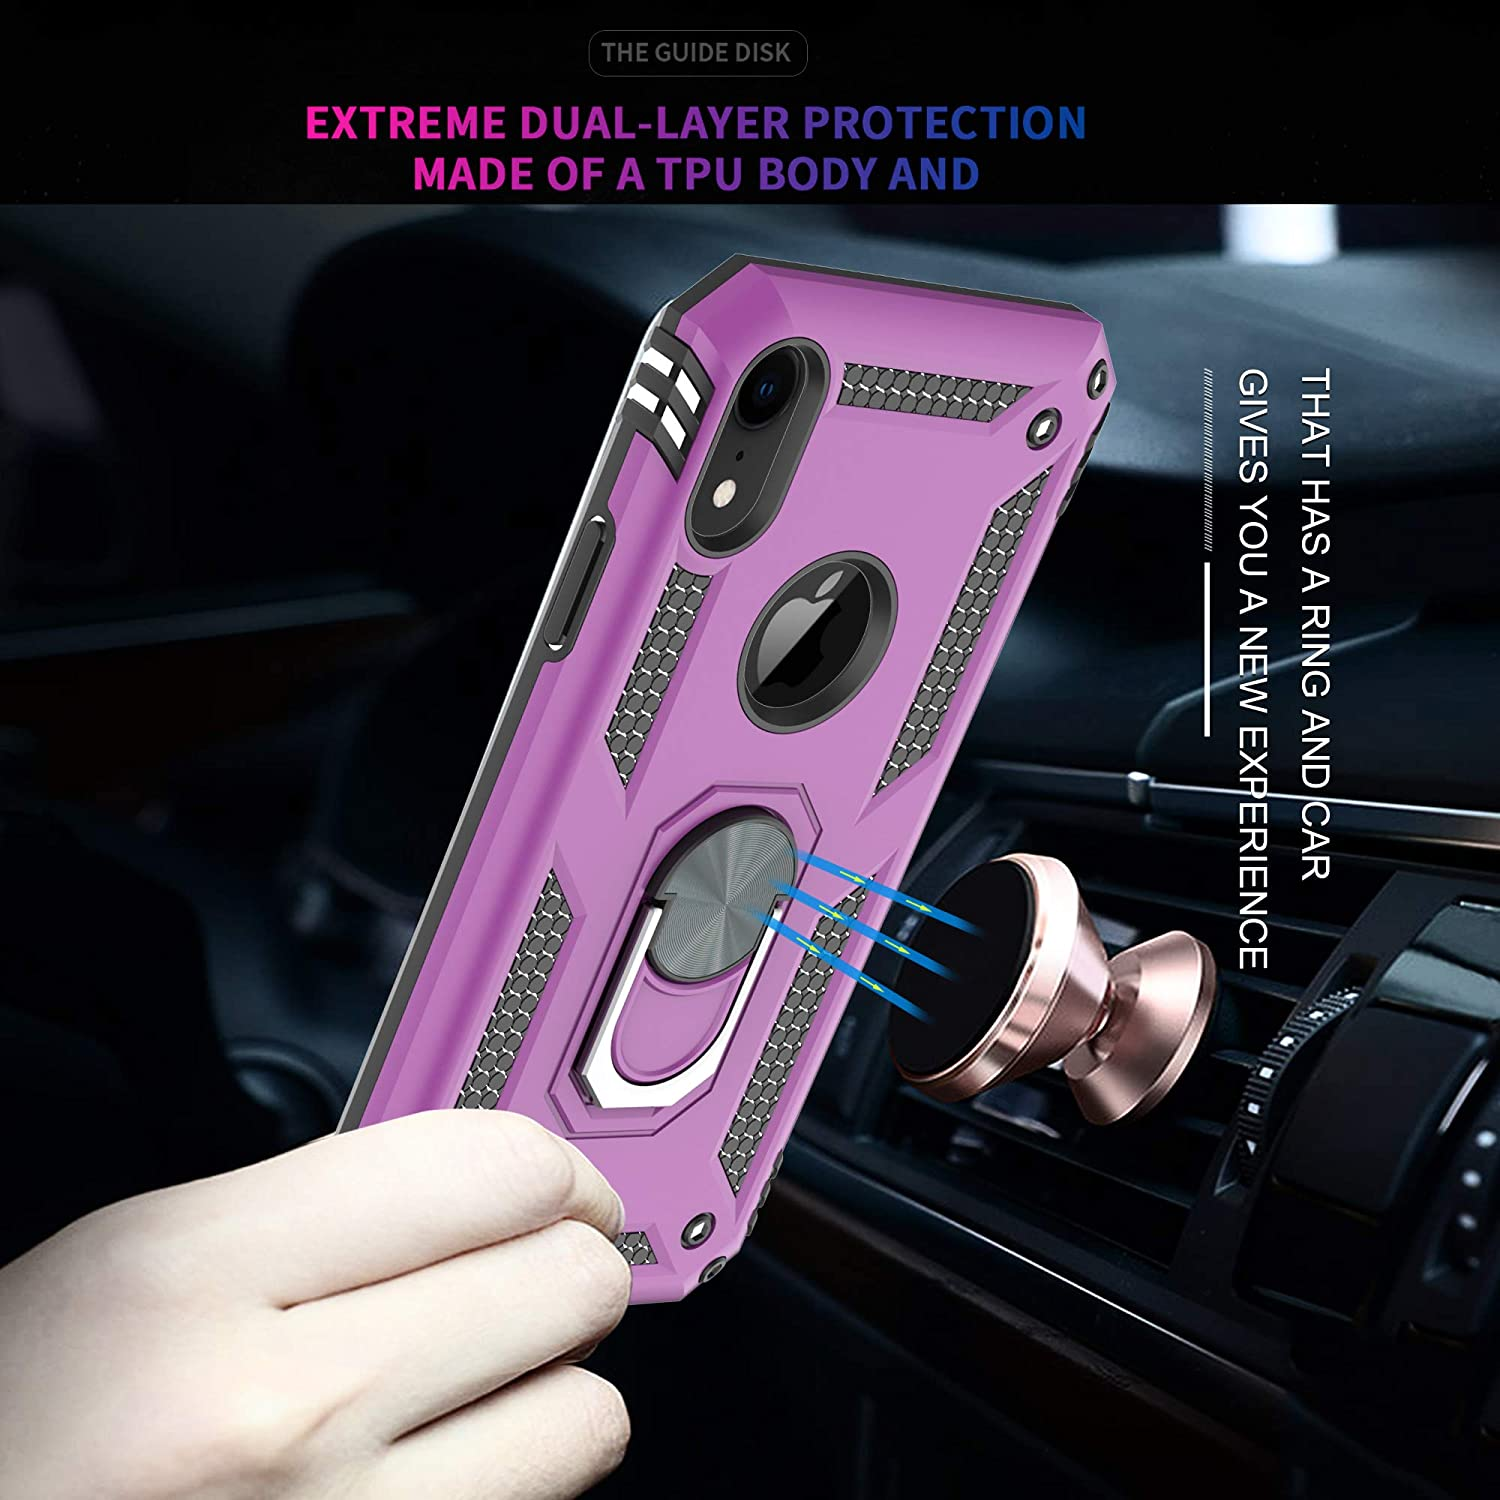 ,360 Degree Rotating Ring Double Layer Shockproof Case for for for iPhone 5-JH Dark Green 2 Pack YmhxcY iPhone SE Case iPhone 5 Case with Tempered Glass Screen Protector 2016 ,iPhone 5S Case